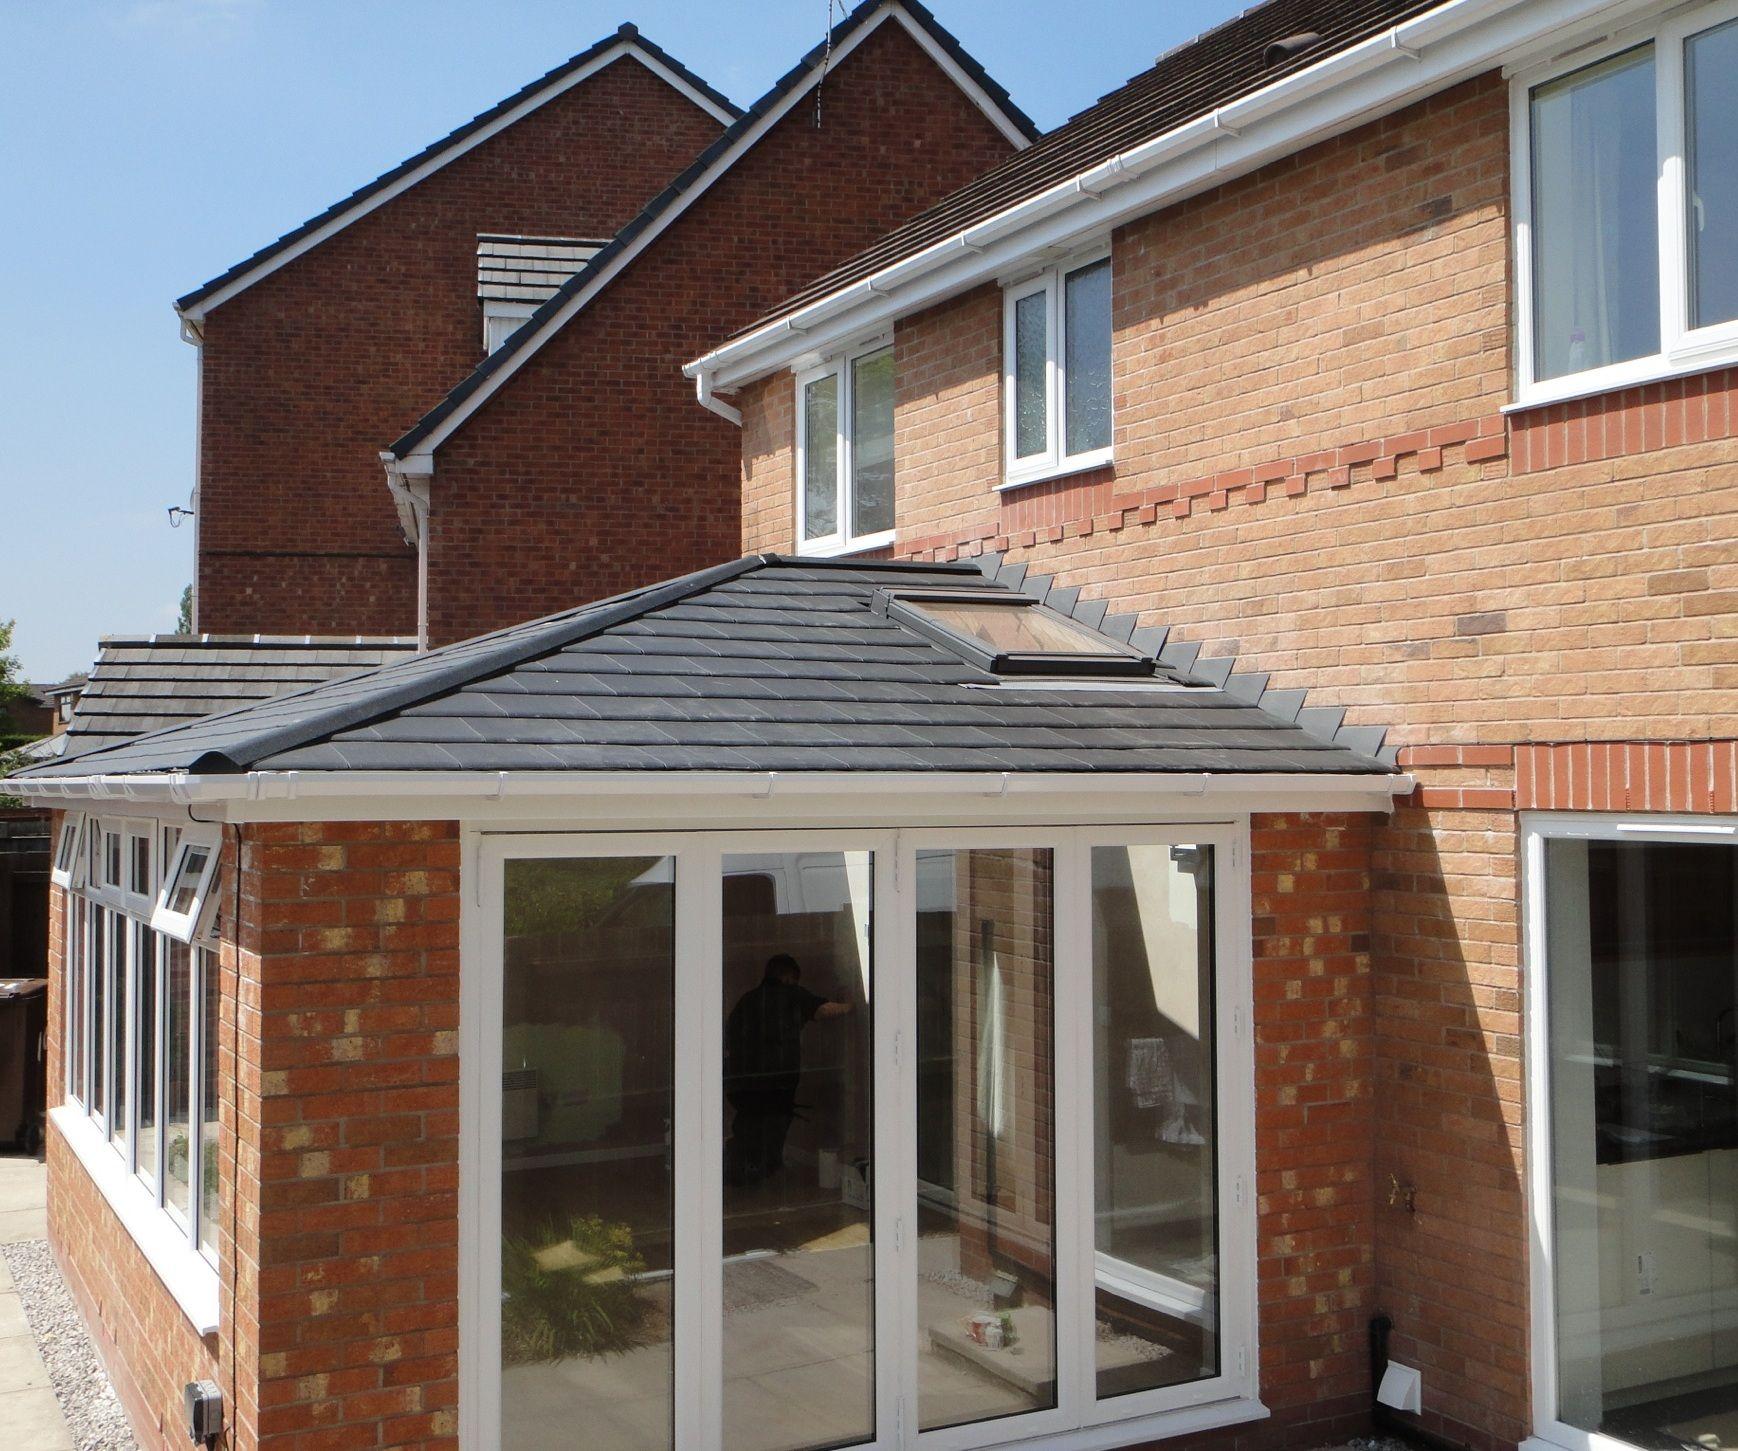 Conservatory And Glass Extension Ideas: Replace Your Existing Conservatory Roof With A Garden Room